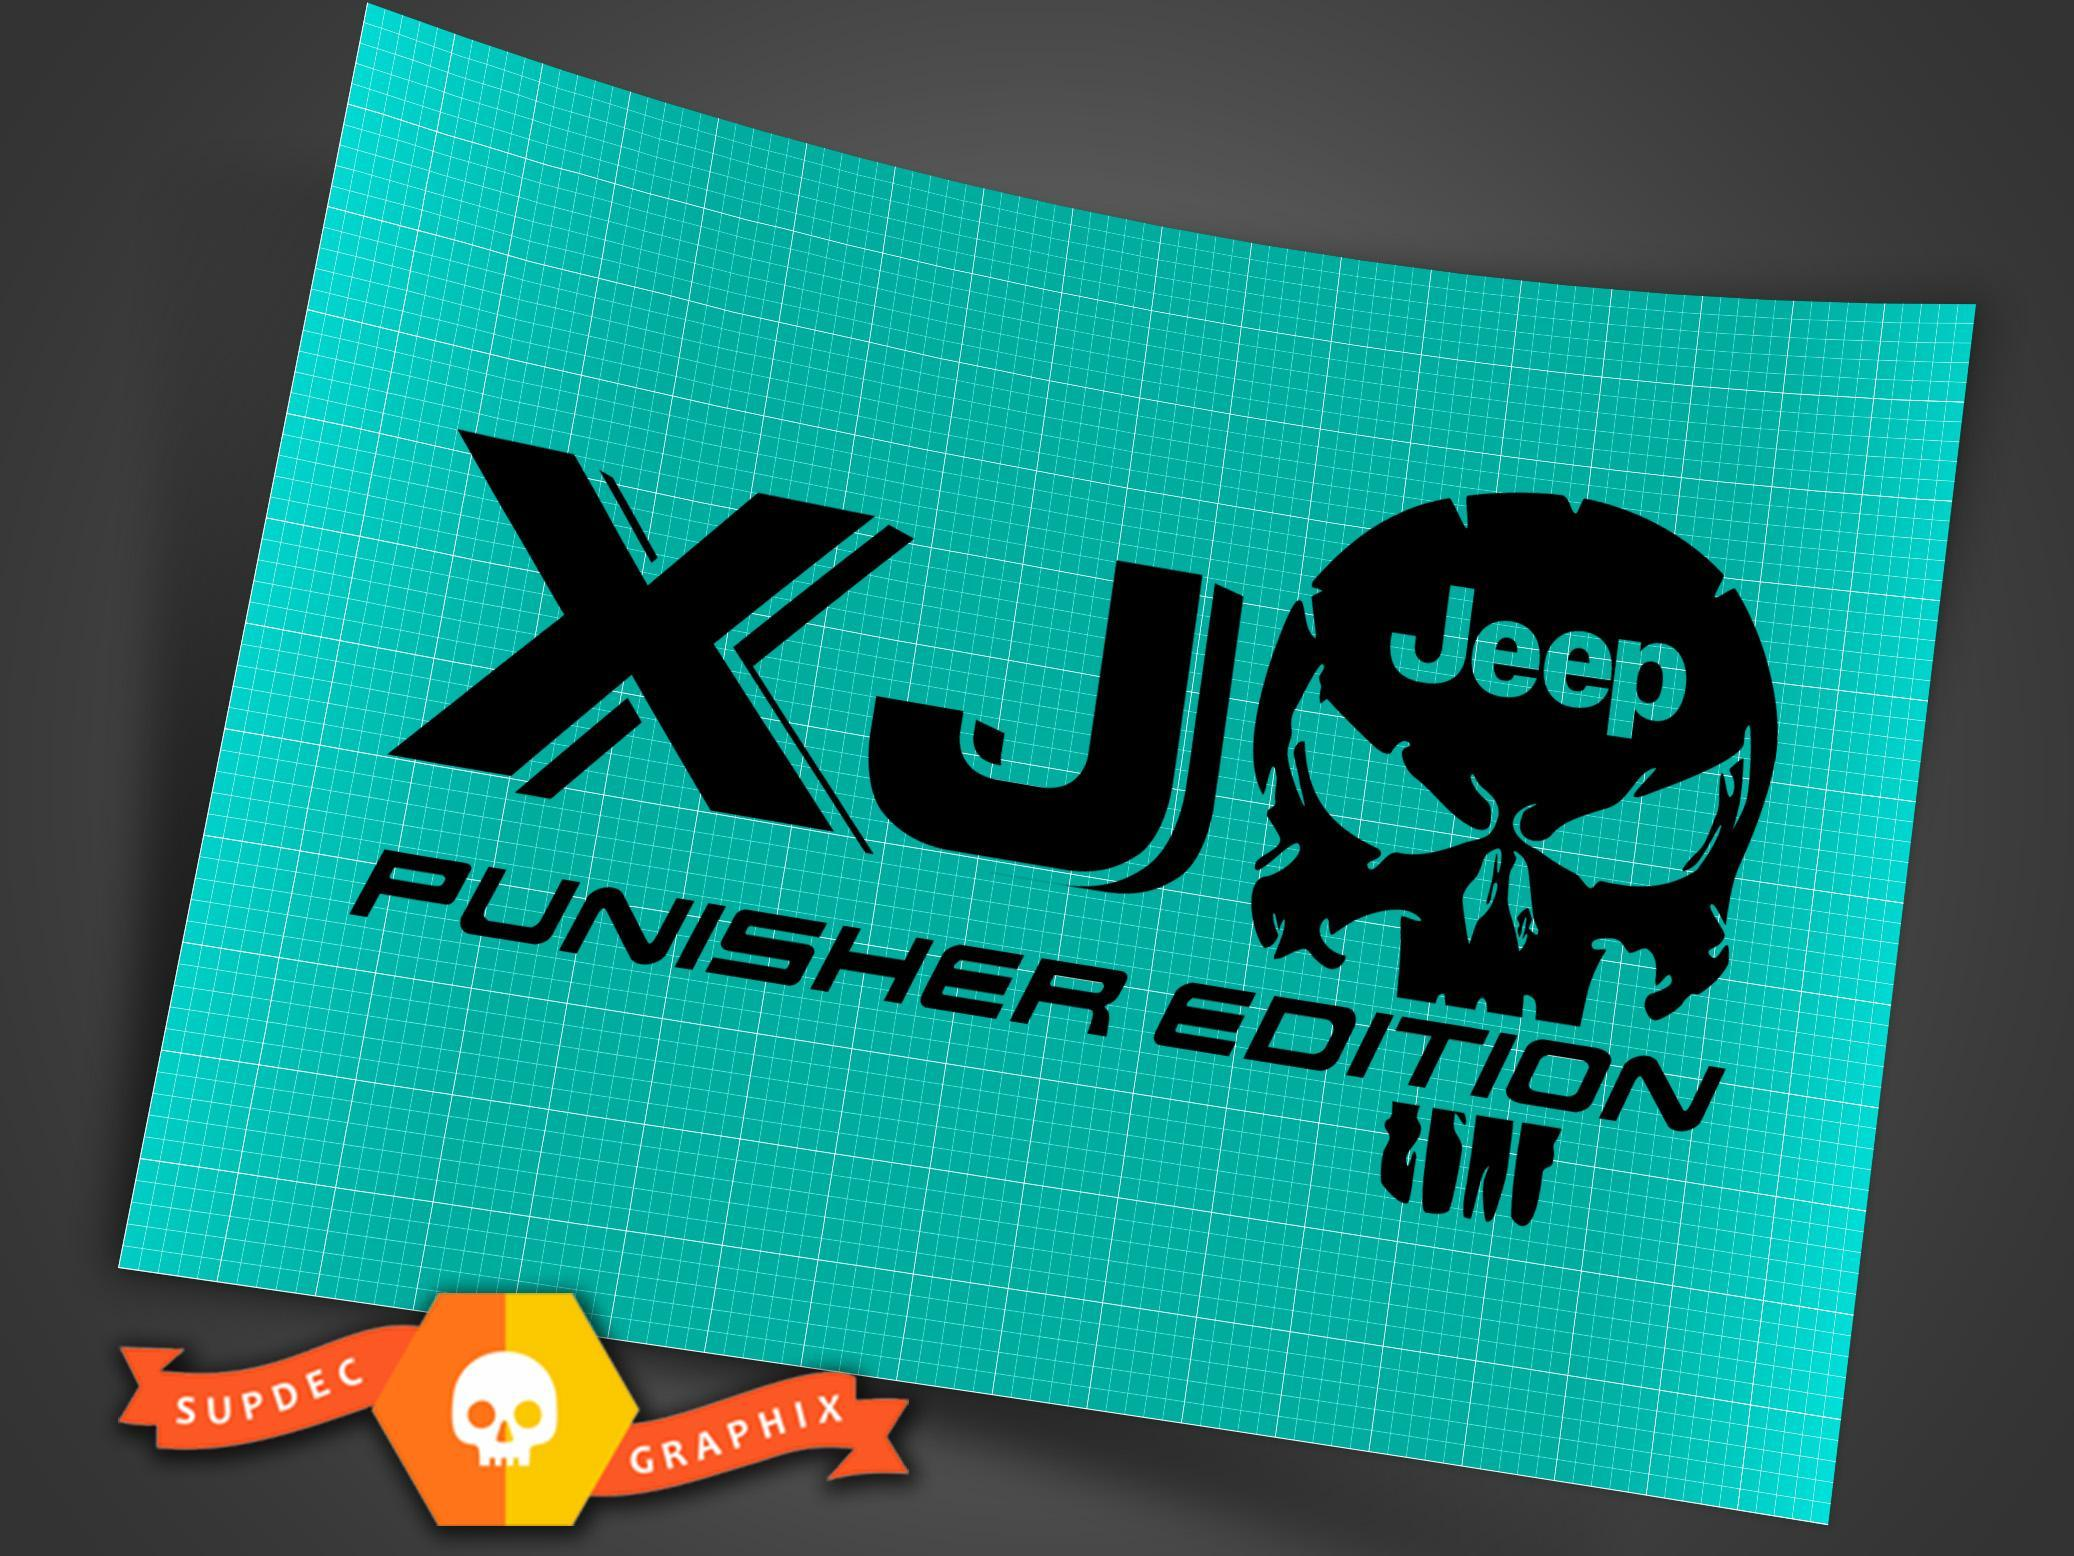 Truck Car Decal - (2) XJ JEEP Punisher EDITION - Vinyl decal Outdoor vinyl